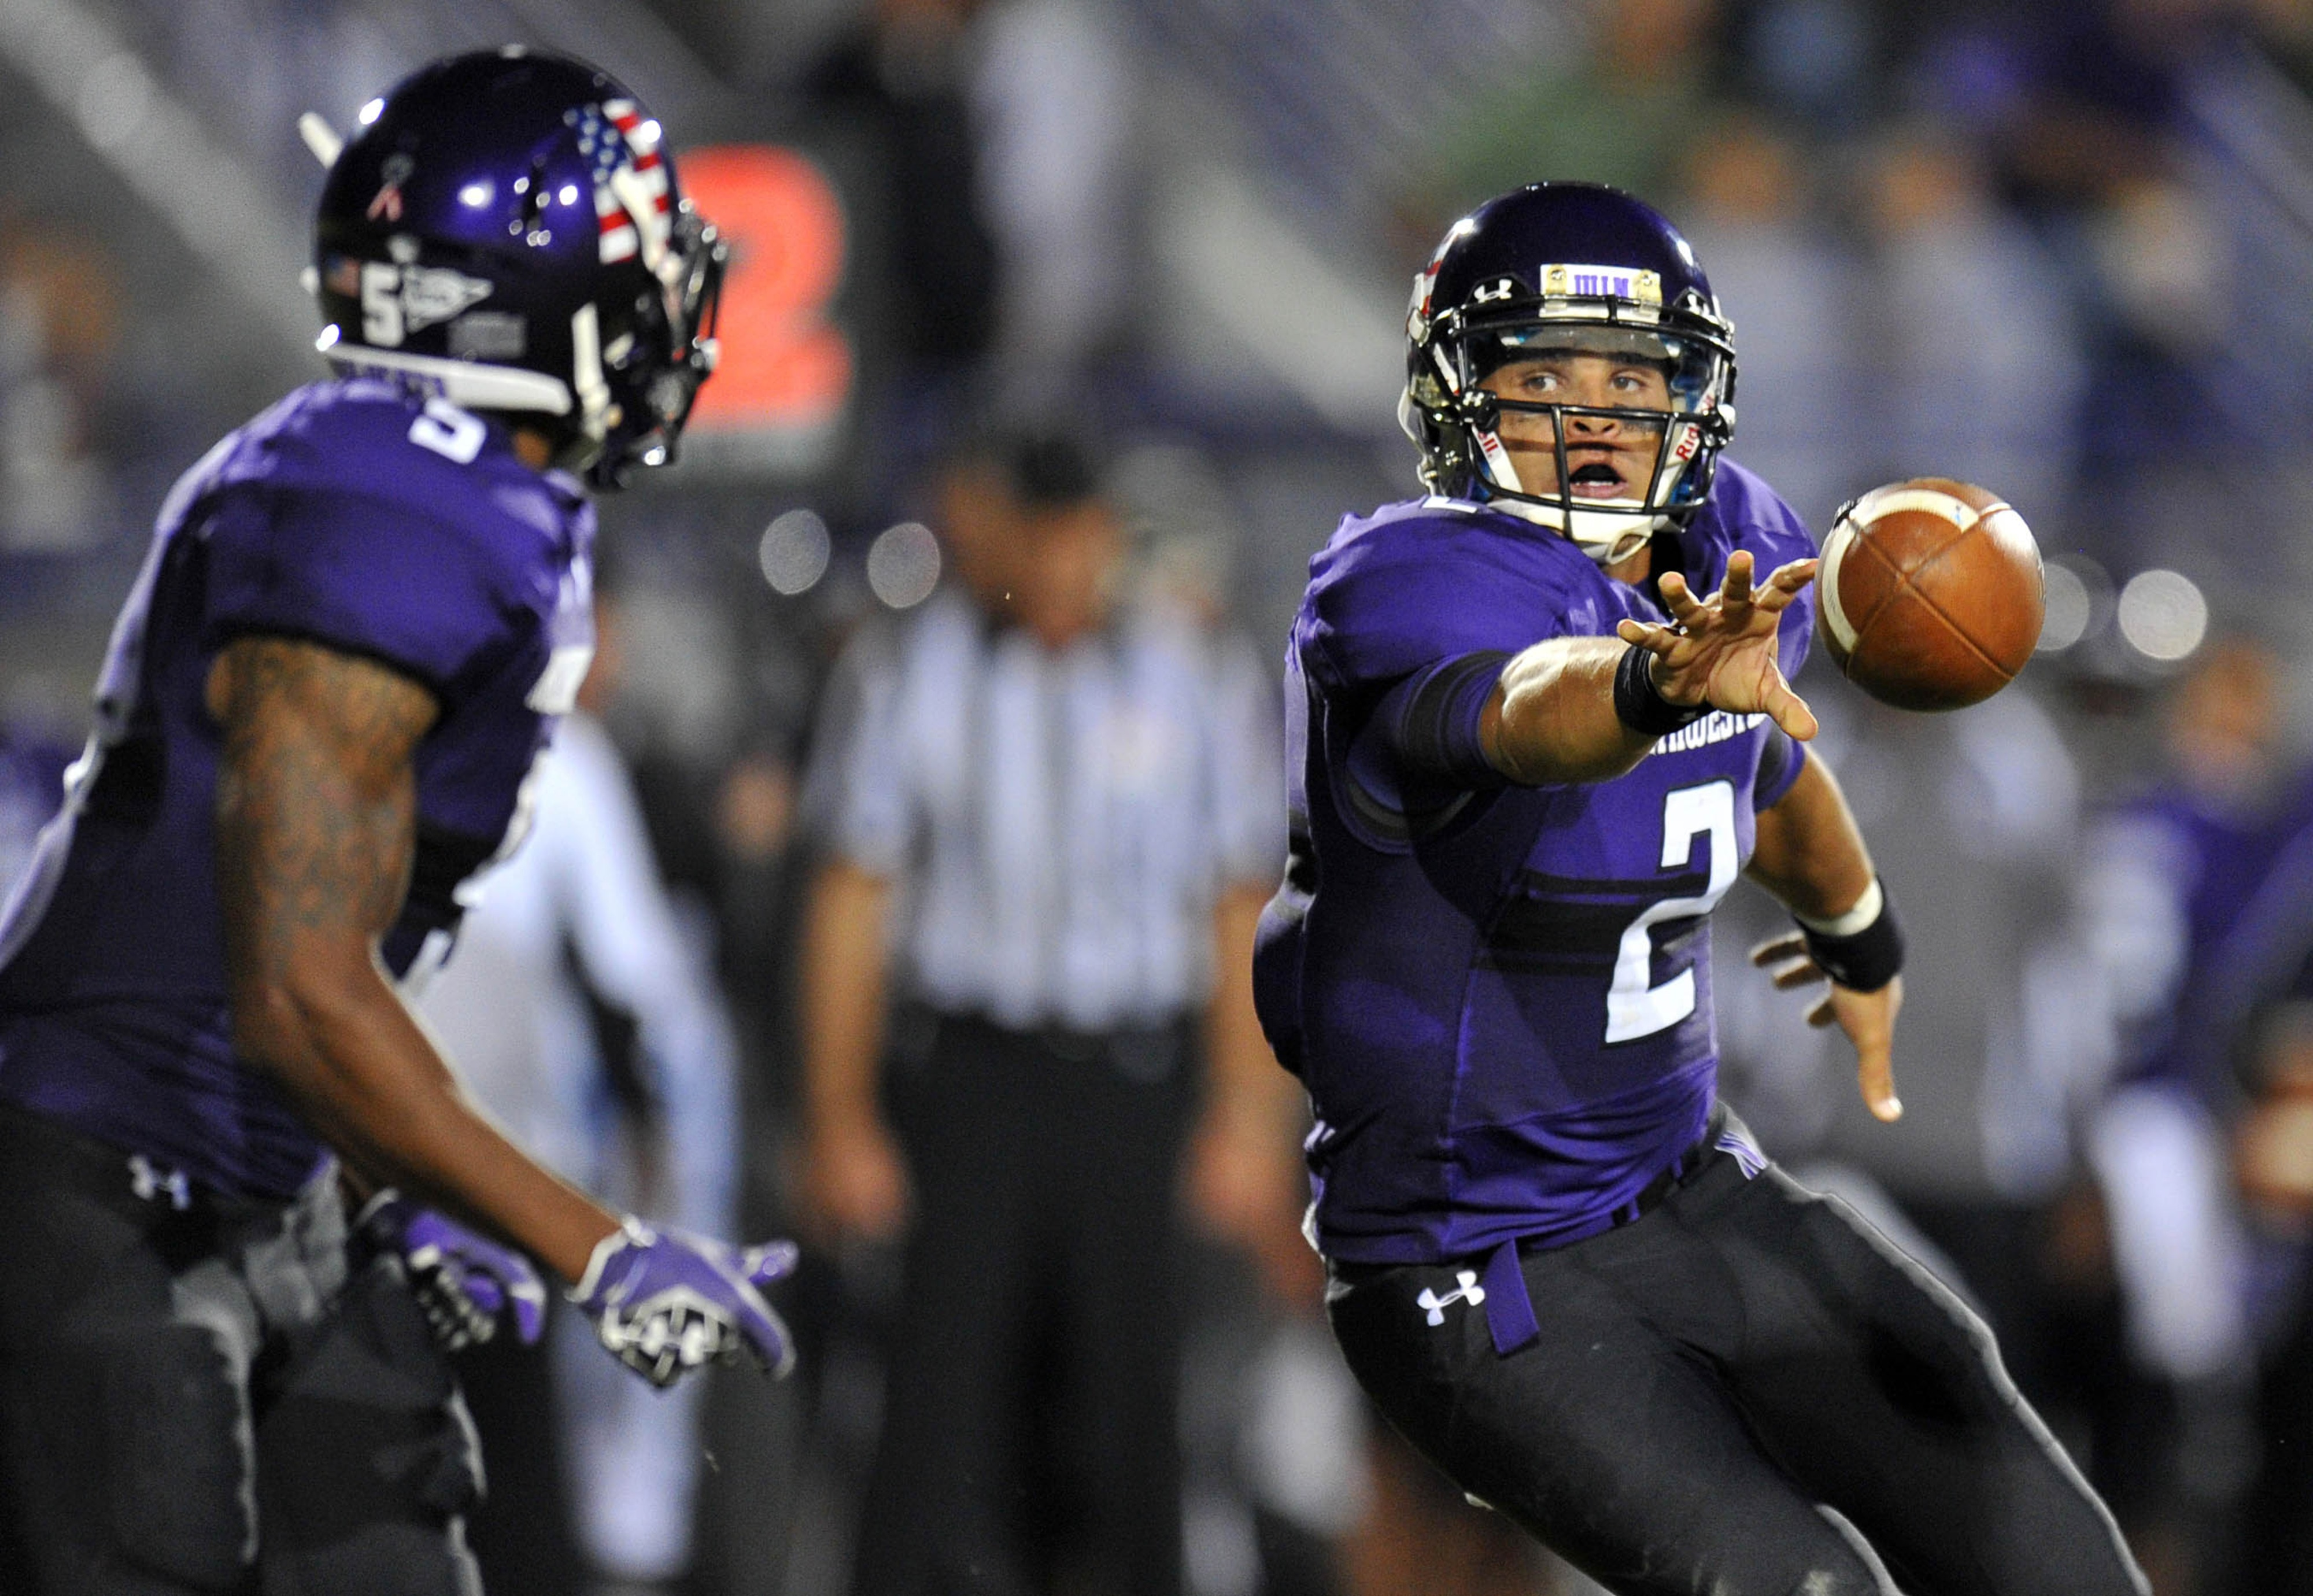 Sep 08, 2012; Evanston, IL, USA; Northwestern Wildcats quarterback Kain Colter (2) pitches the ball to running back Venric Mark (5) against the Vanderbilt Commodores during the second quarter at Ryan Field. Mandatory Credit: Mike DiNovo-US PRESSWIRE